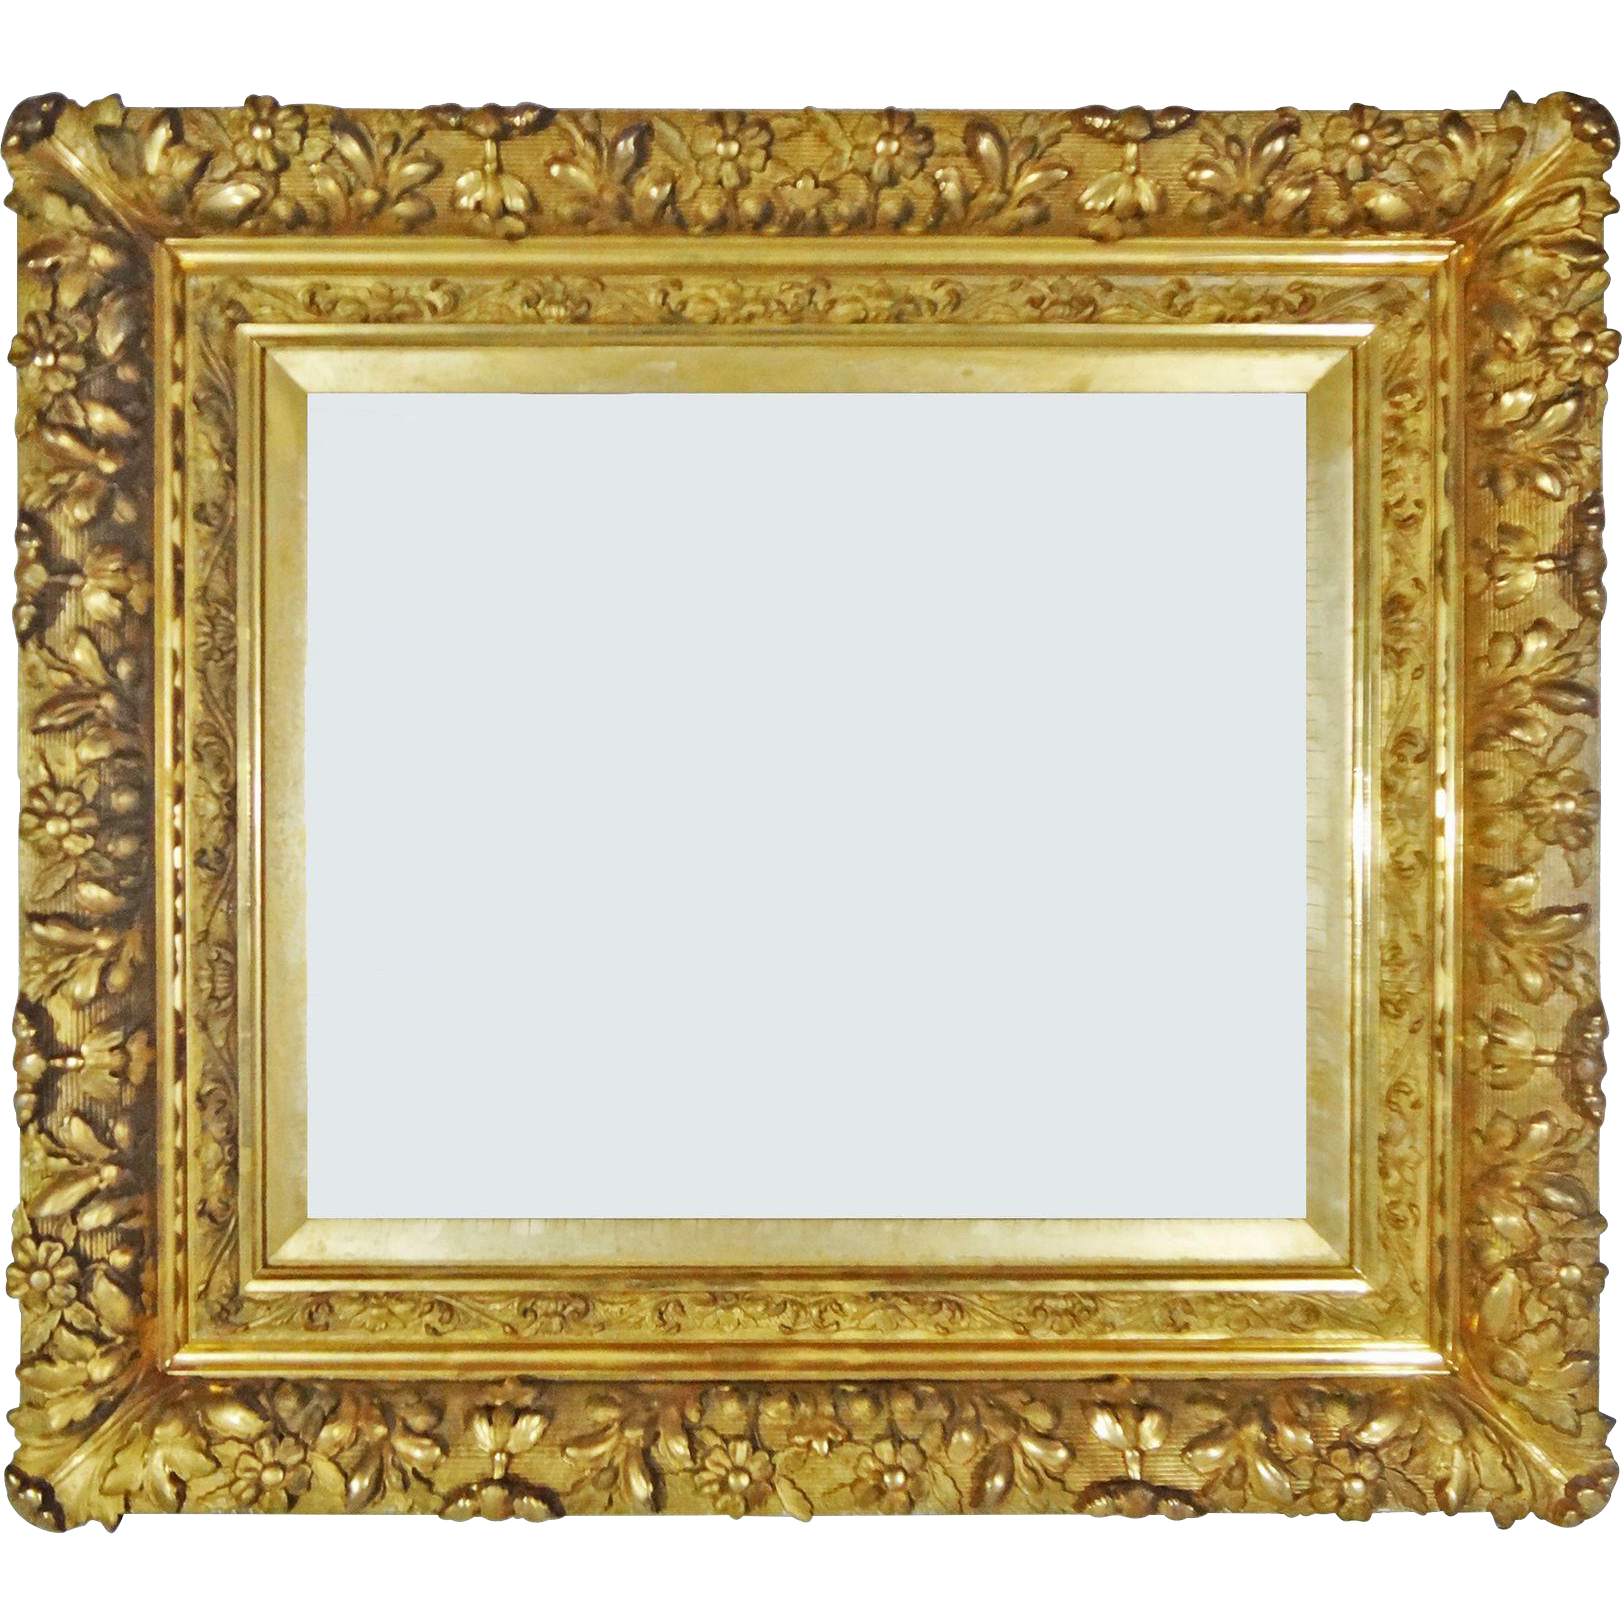 Antique French Louis XIII Style Barbizon Gilt Wood Gesso Picture / Mirror Frame - circa 1850-1870